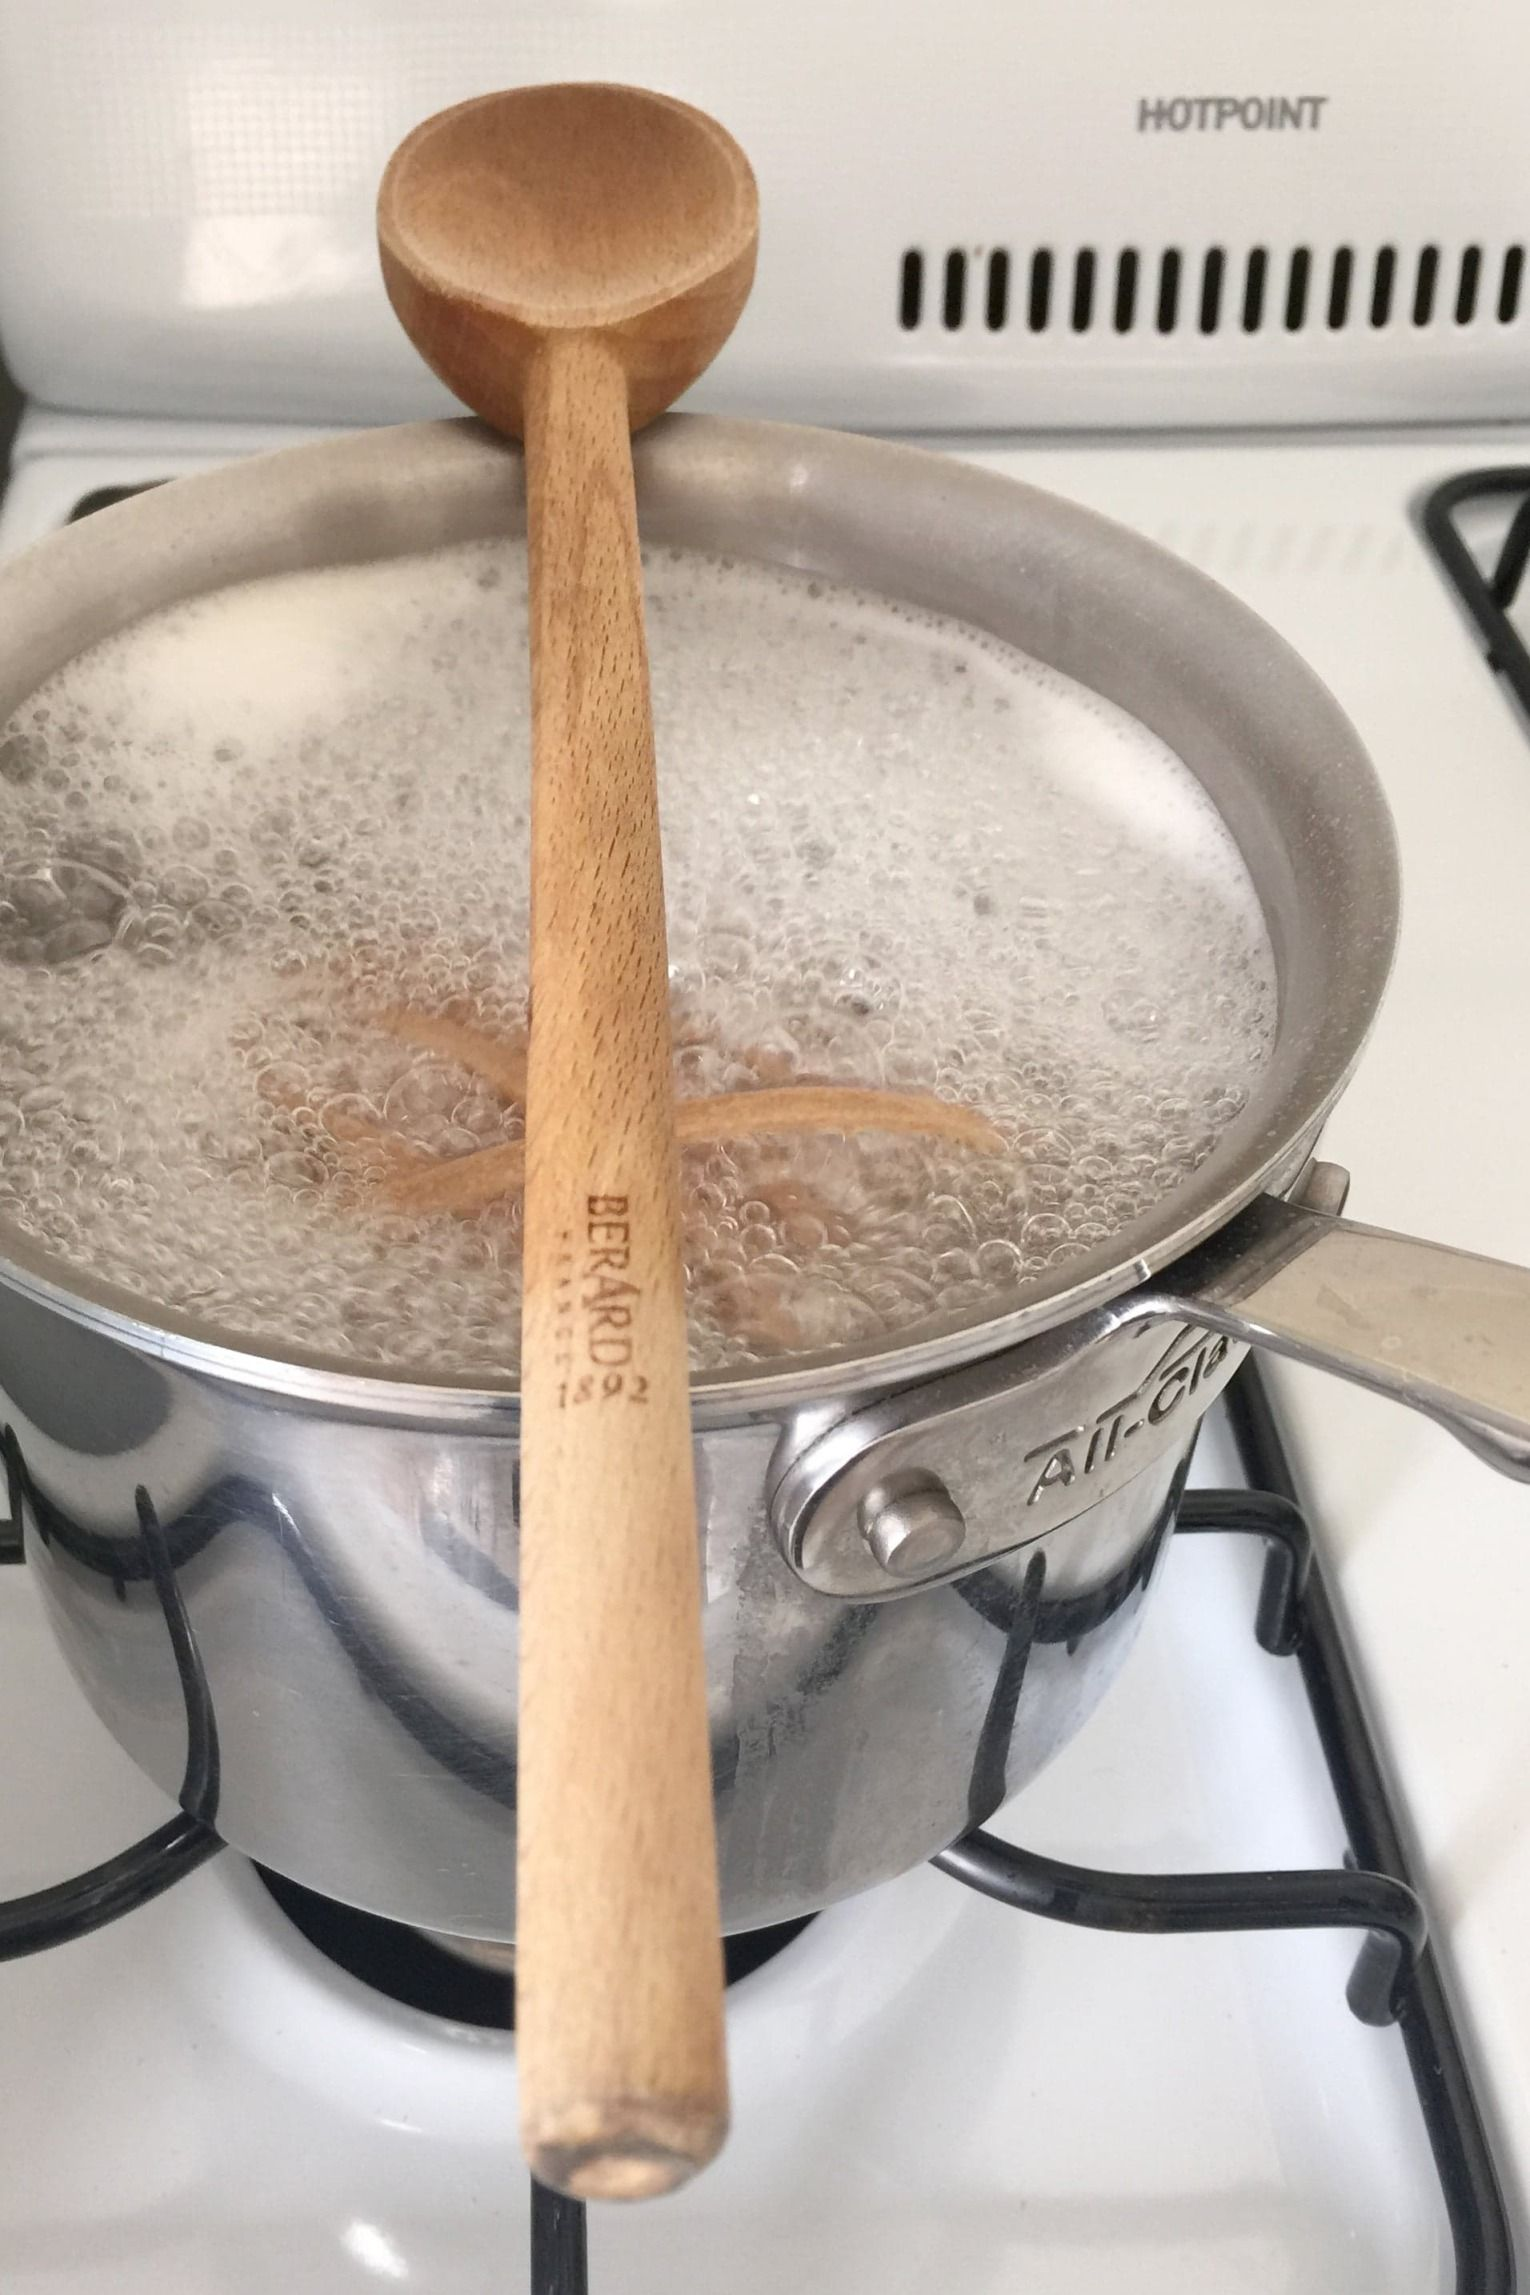 Life Hacks In Der Küche Prevent Water From Boiling Over With This Simple Trick